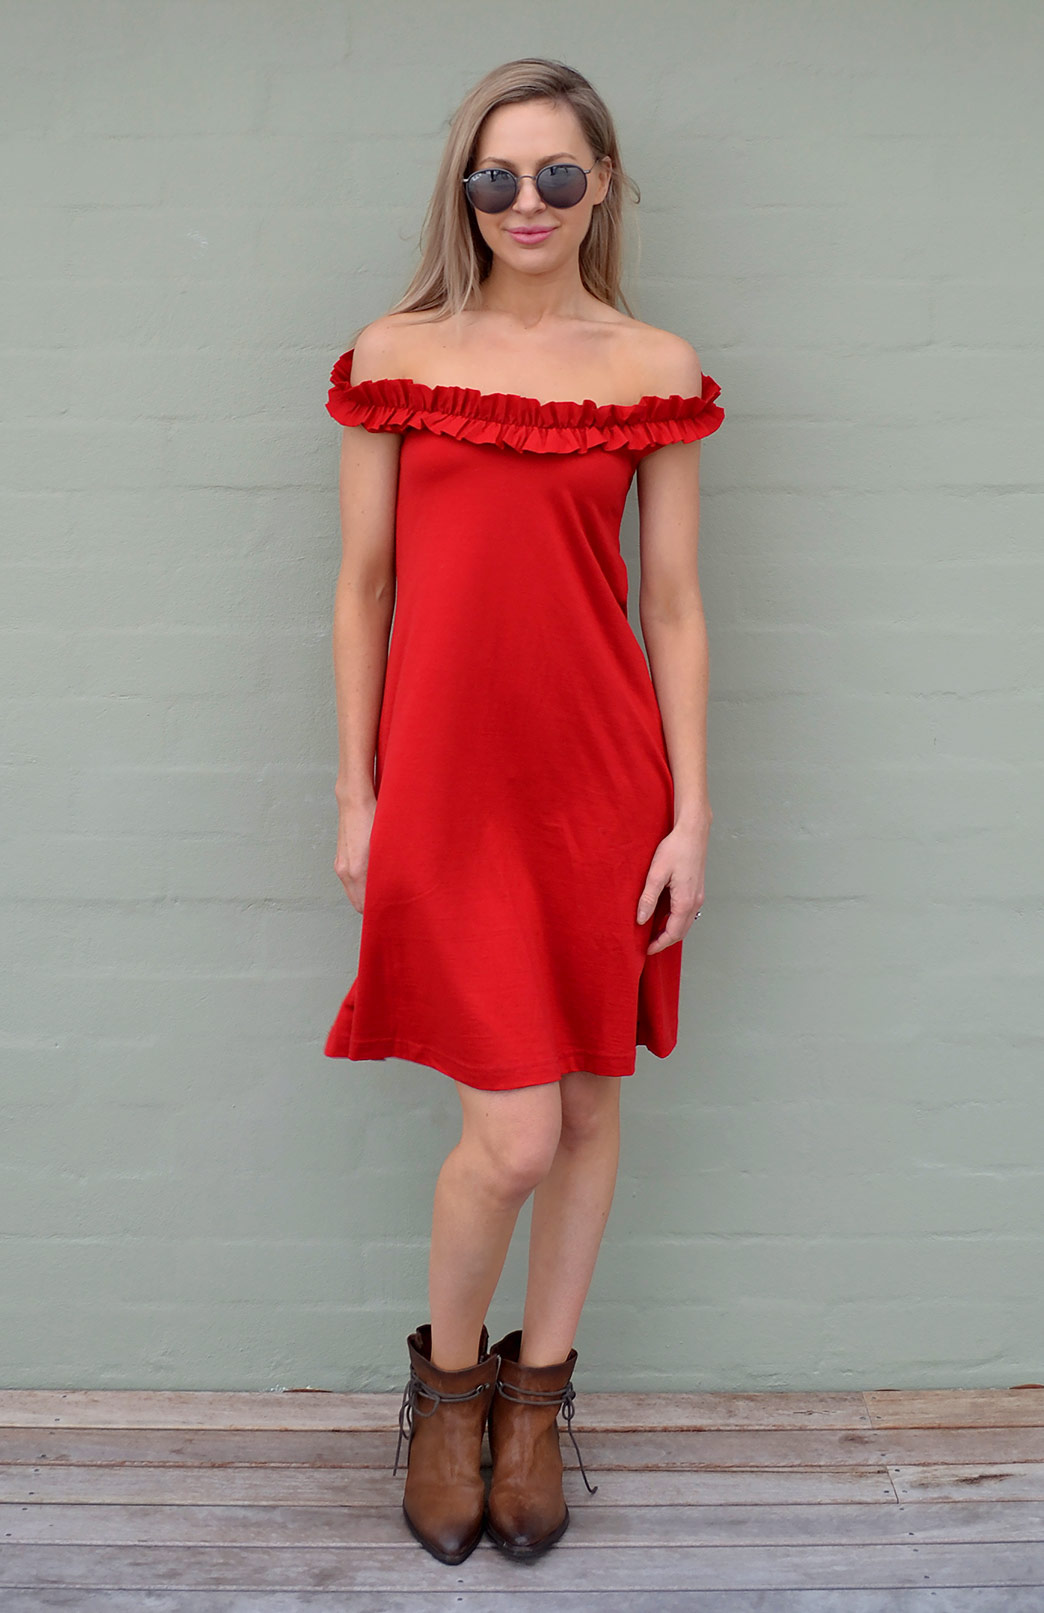 Ruffled Swing Dress - Women's Flame Red Merino Wool Swing Dress with Ruffled Neckline - Smitten Merino Tasmania Australia